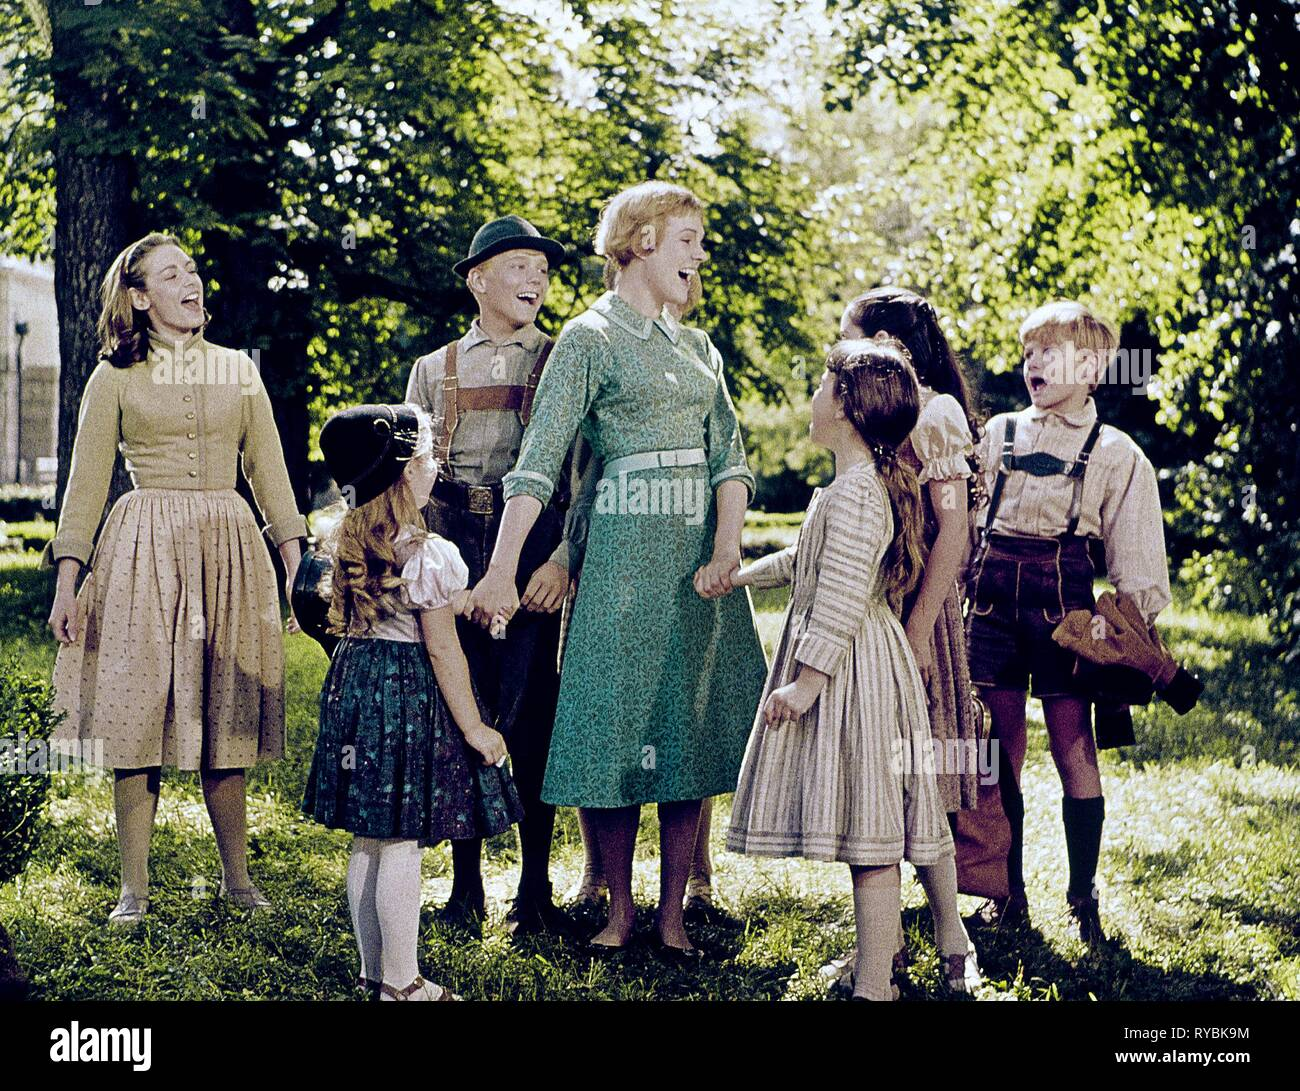 CHARMIAN CARR, KYM KARATH, NICHOLAS HAMMOND, JULIE ANDREWS, DEBBIE TURNER, HEATHER MENZIES-URICH,DUANE CHASE, THE SOUND OF MUSIC, 1965 - Stock Image